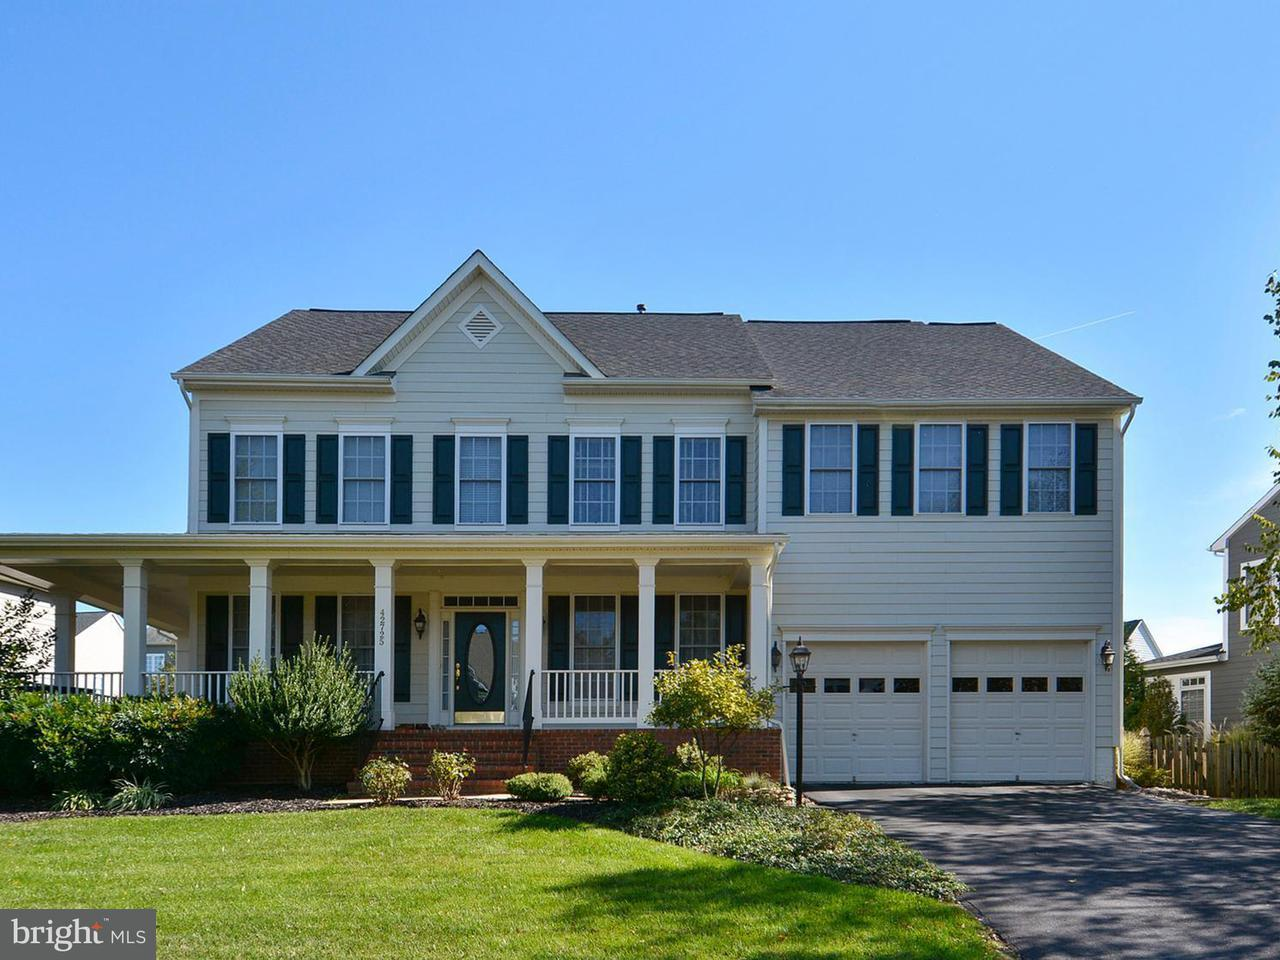 Single Family Home for Sale at 42725 Ridgeway Drive 42725 Ridgeway Drive Broadlands, Virginia 20148 United States